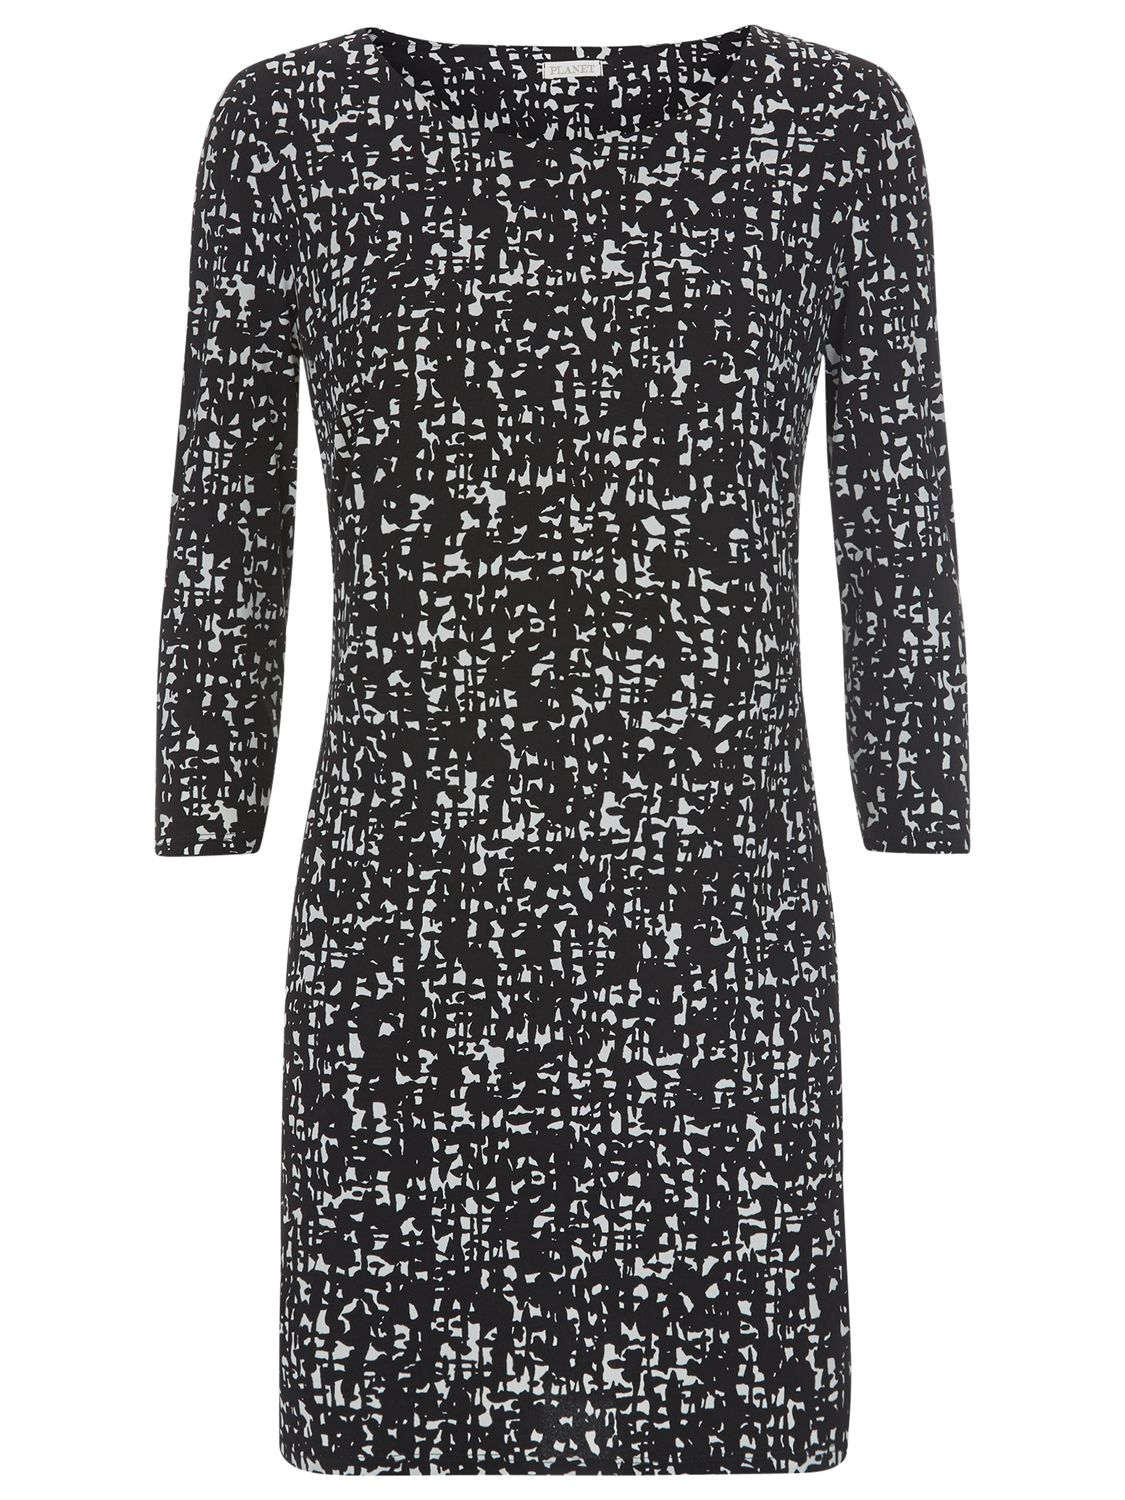 planet speckle print border tunic black, planet, speckle, print, border, tunic, black, s xl, clearance, womenswear offers, womens dresses offers, women, inactive womenswear, new reductions, womens dresses, special offers, 1743401